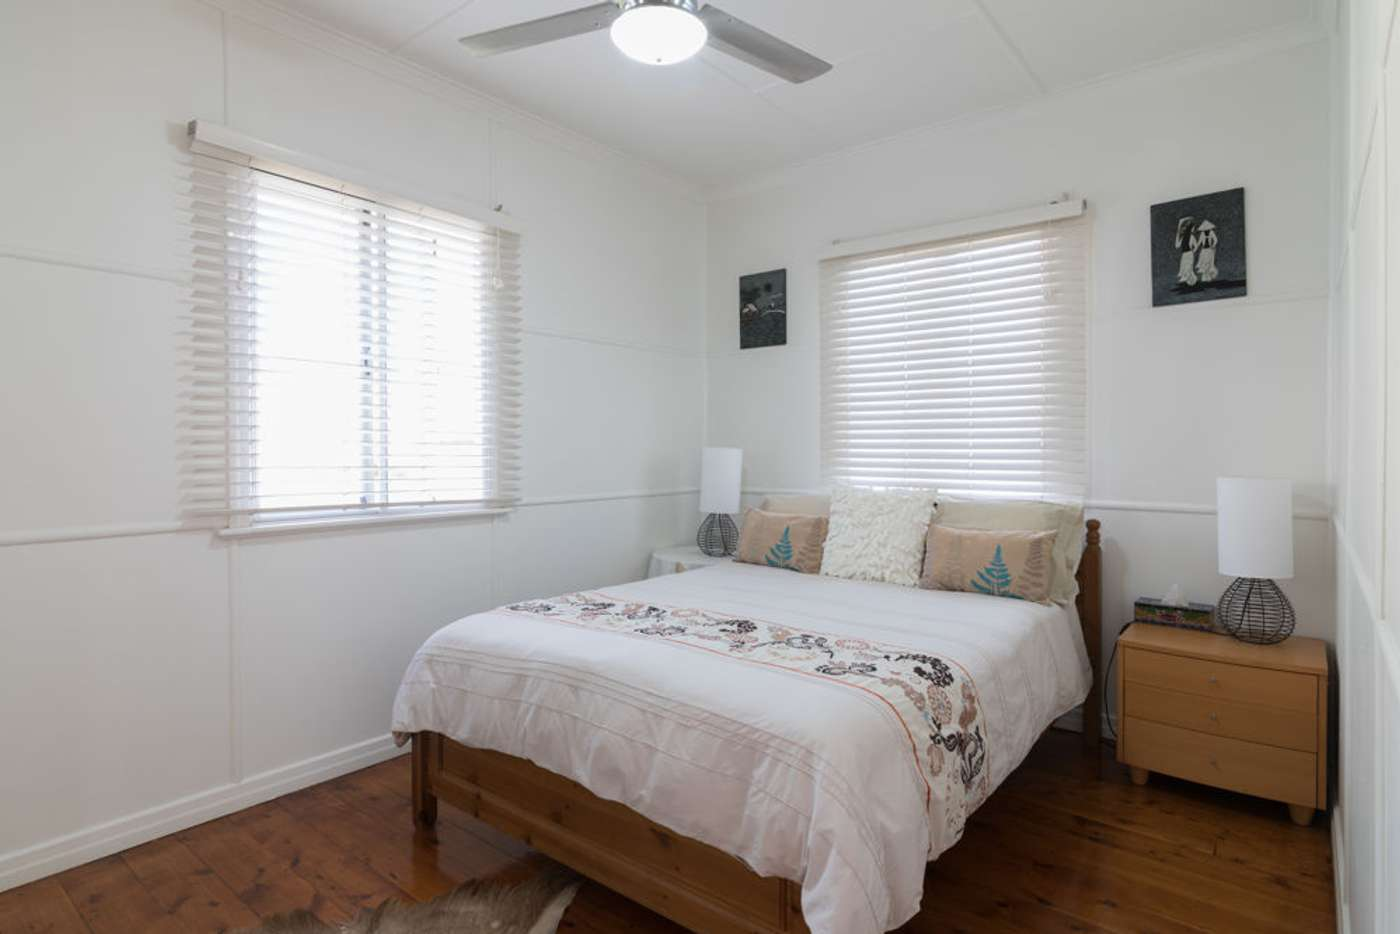 Fifth view of Homely house listing, 92 Constellation Way, Wynnum QLD 4178